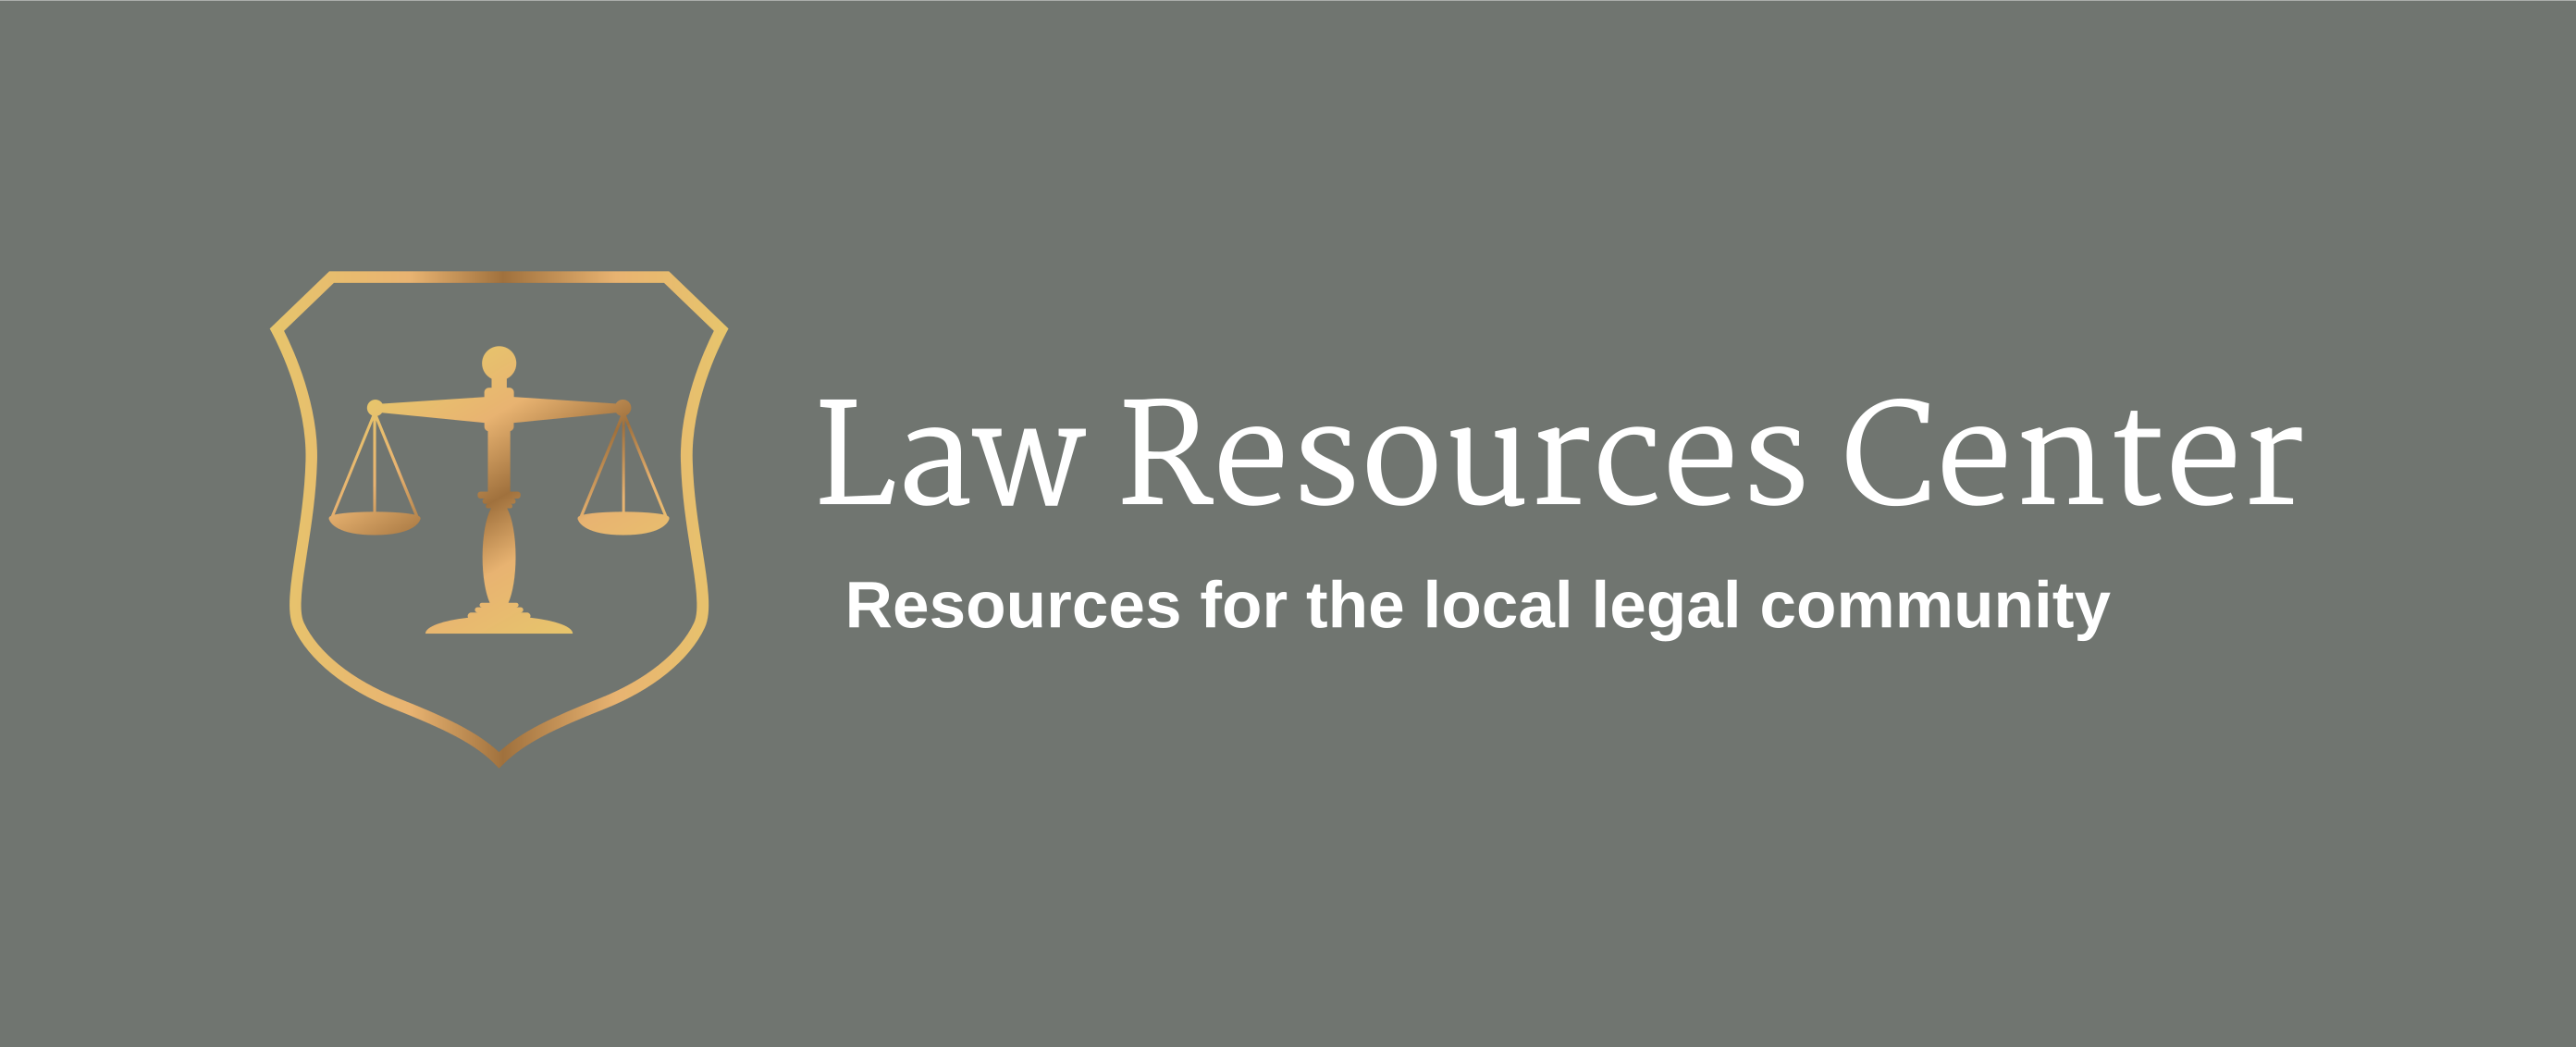 Law Resources Center